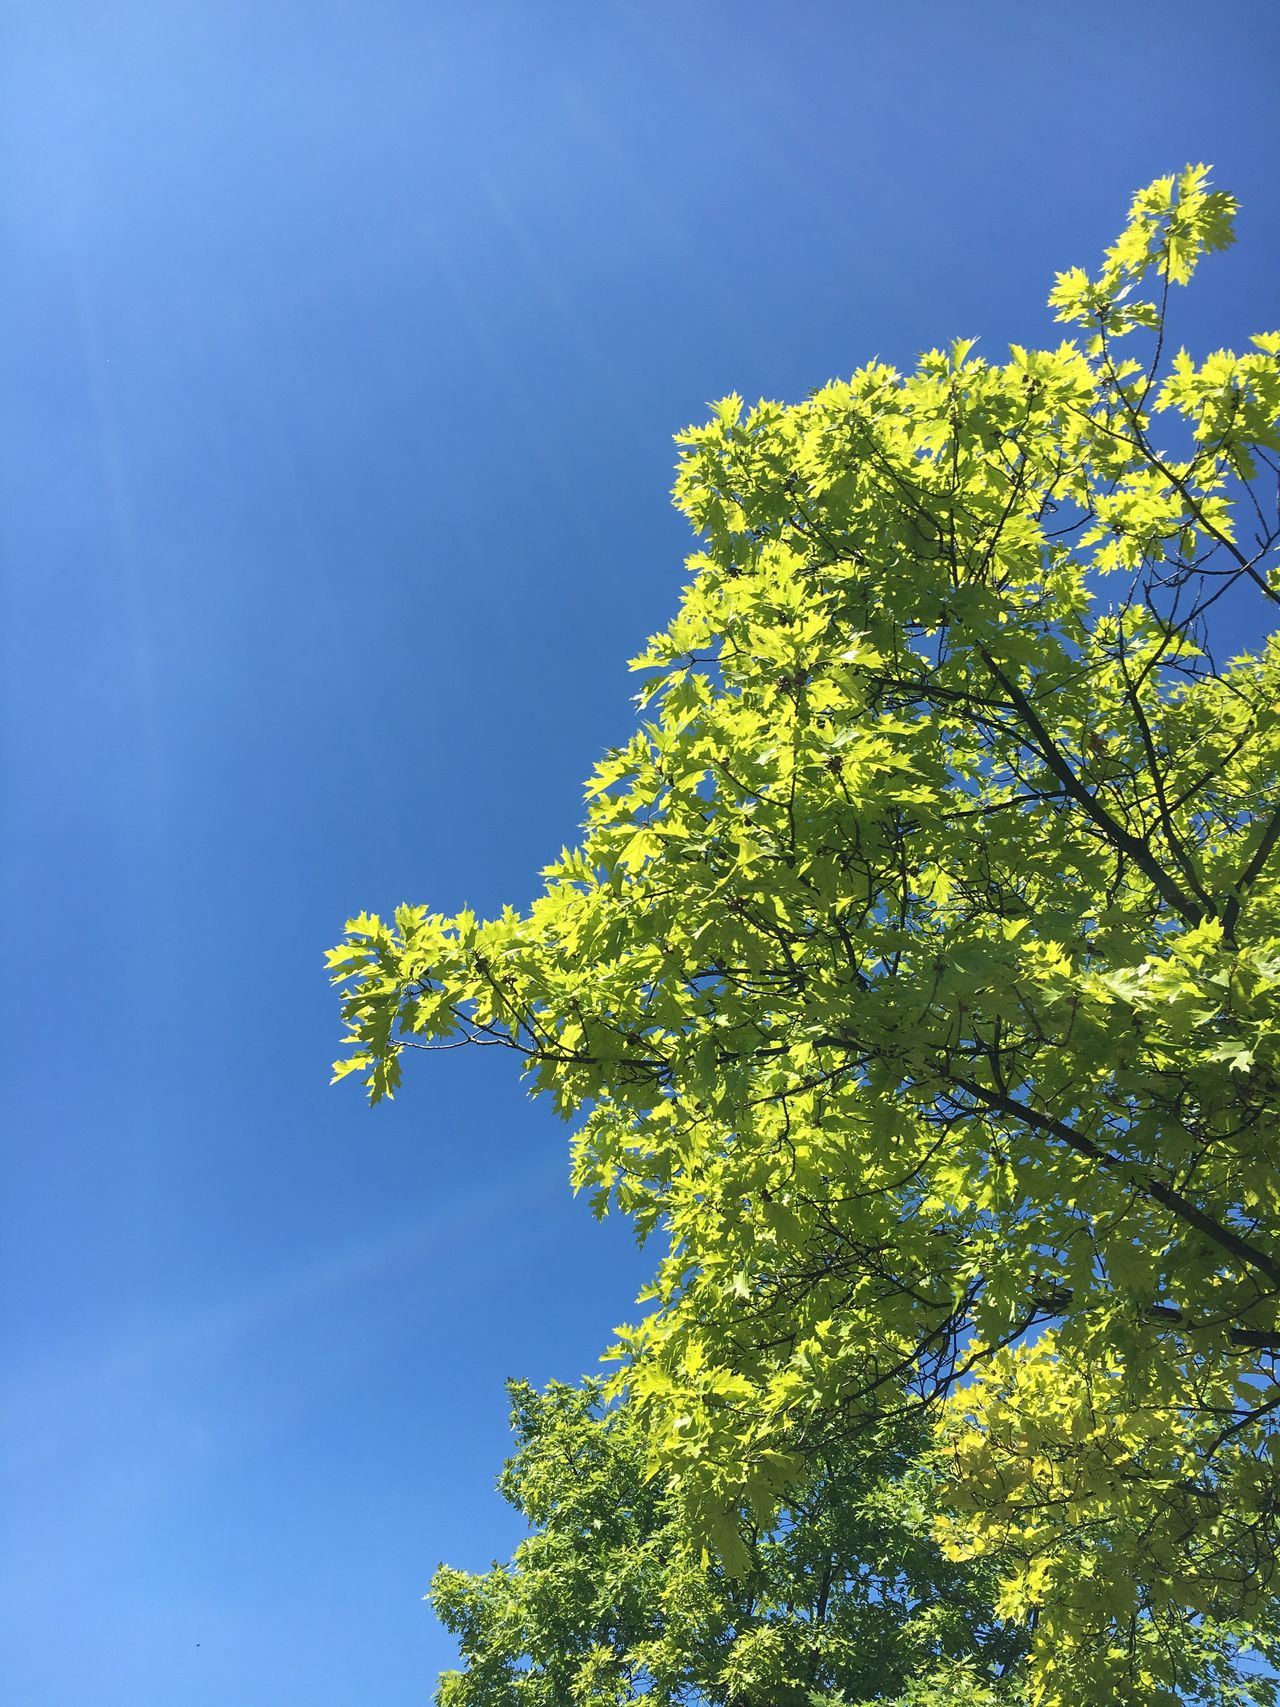 Growth Low Angle View Tree Nature Blue Beauty In Nature Clear Sky No People Day Branch Green Color Outdoors Freshness Fragility Flower Leaf Sky Close-up